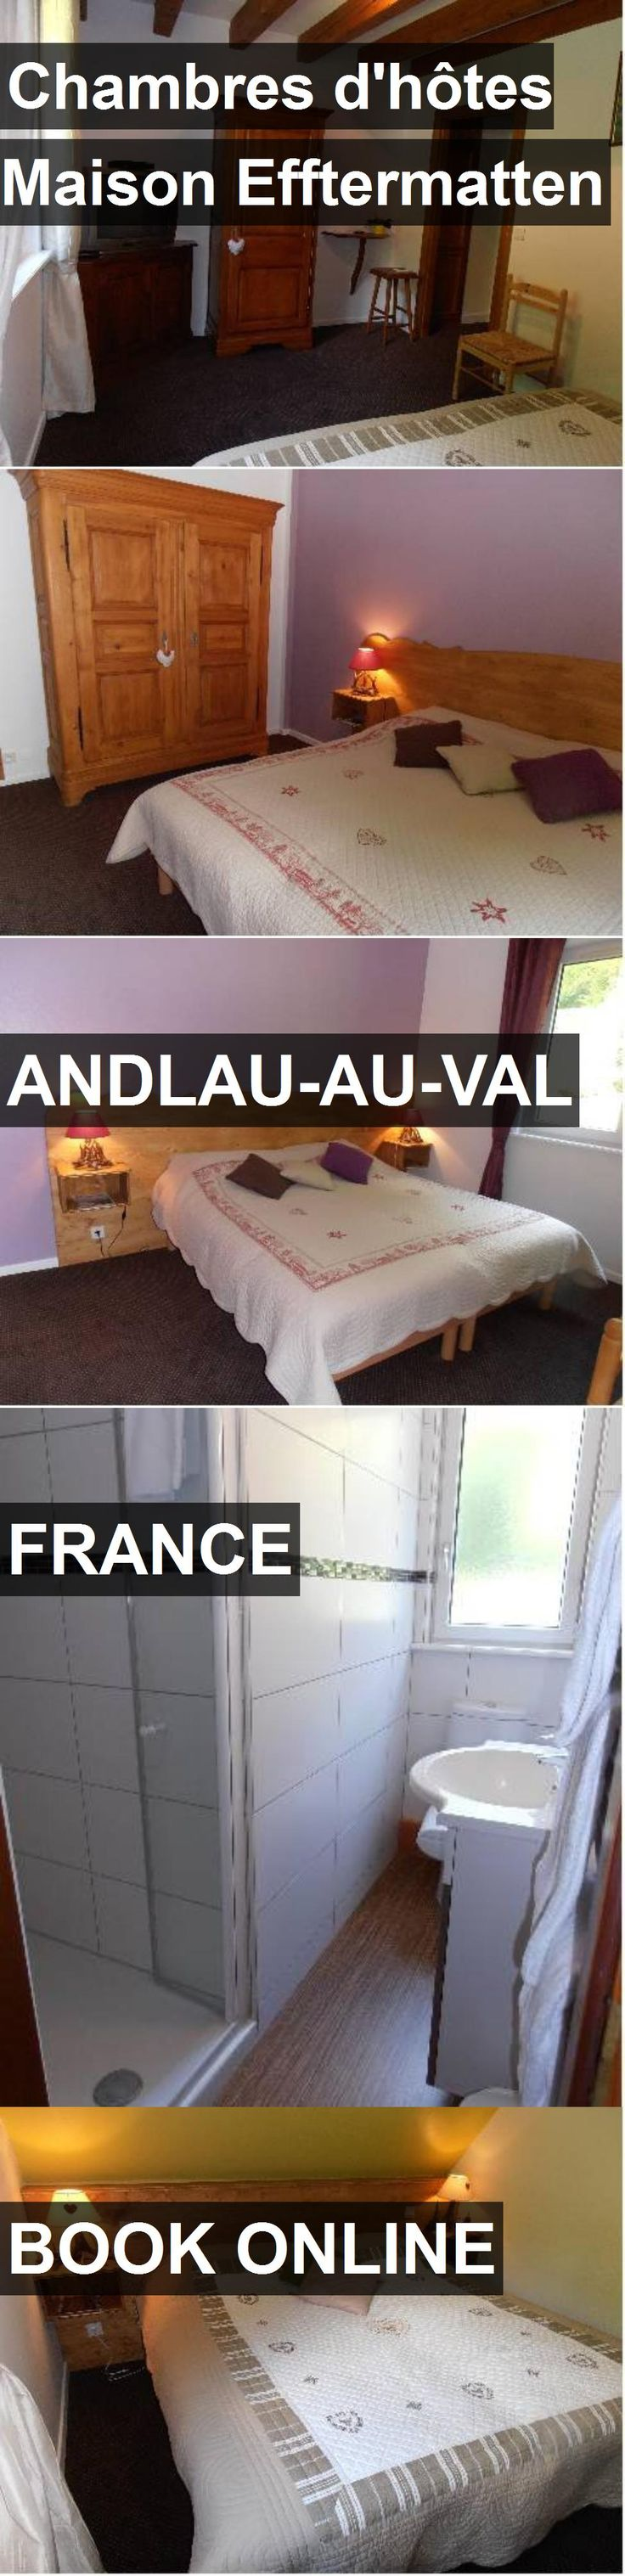 Hotel Chambres d'hôtes Maison Efftermatten in Andlau-au-Val, France. For more information, photos, reviews and best prices please follow the link. #France #Andlau-au-Val #Chambresd'hôtesMaisonEfftermatten #hotel #travel #vacation